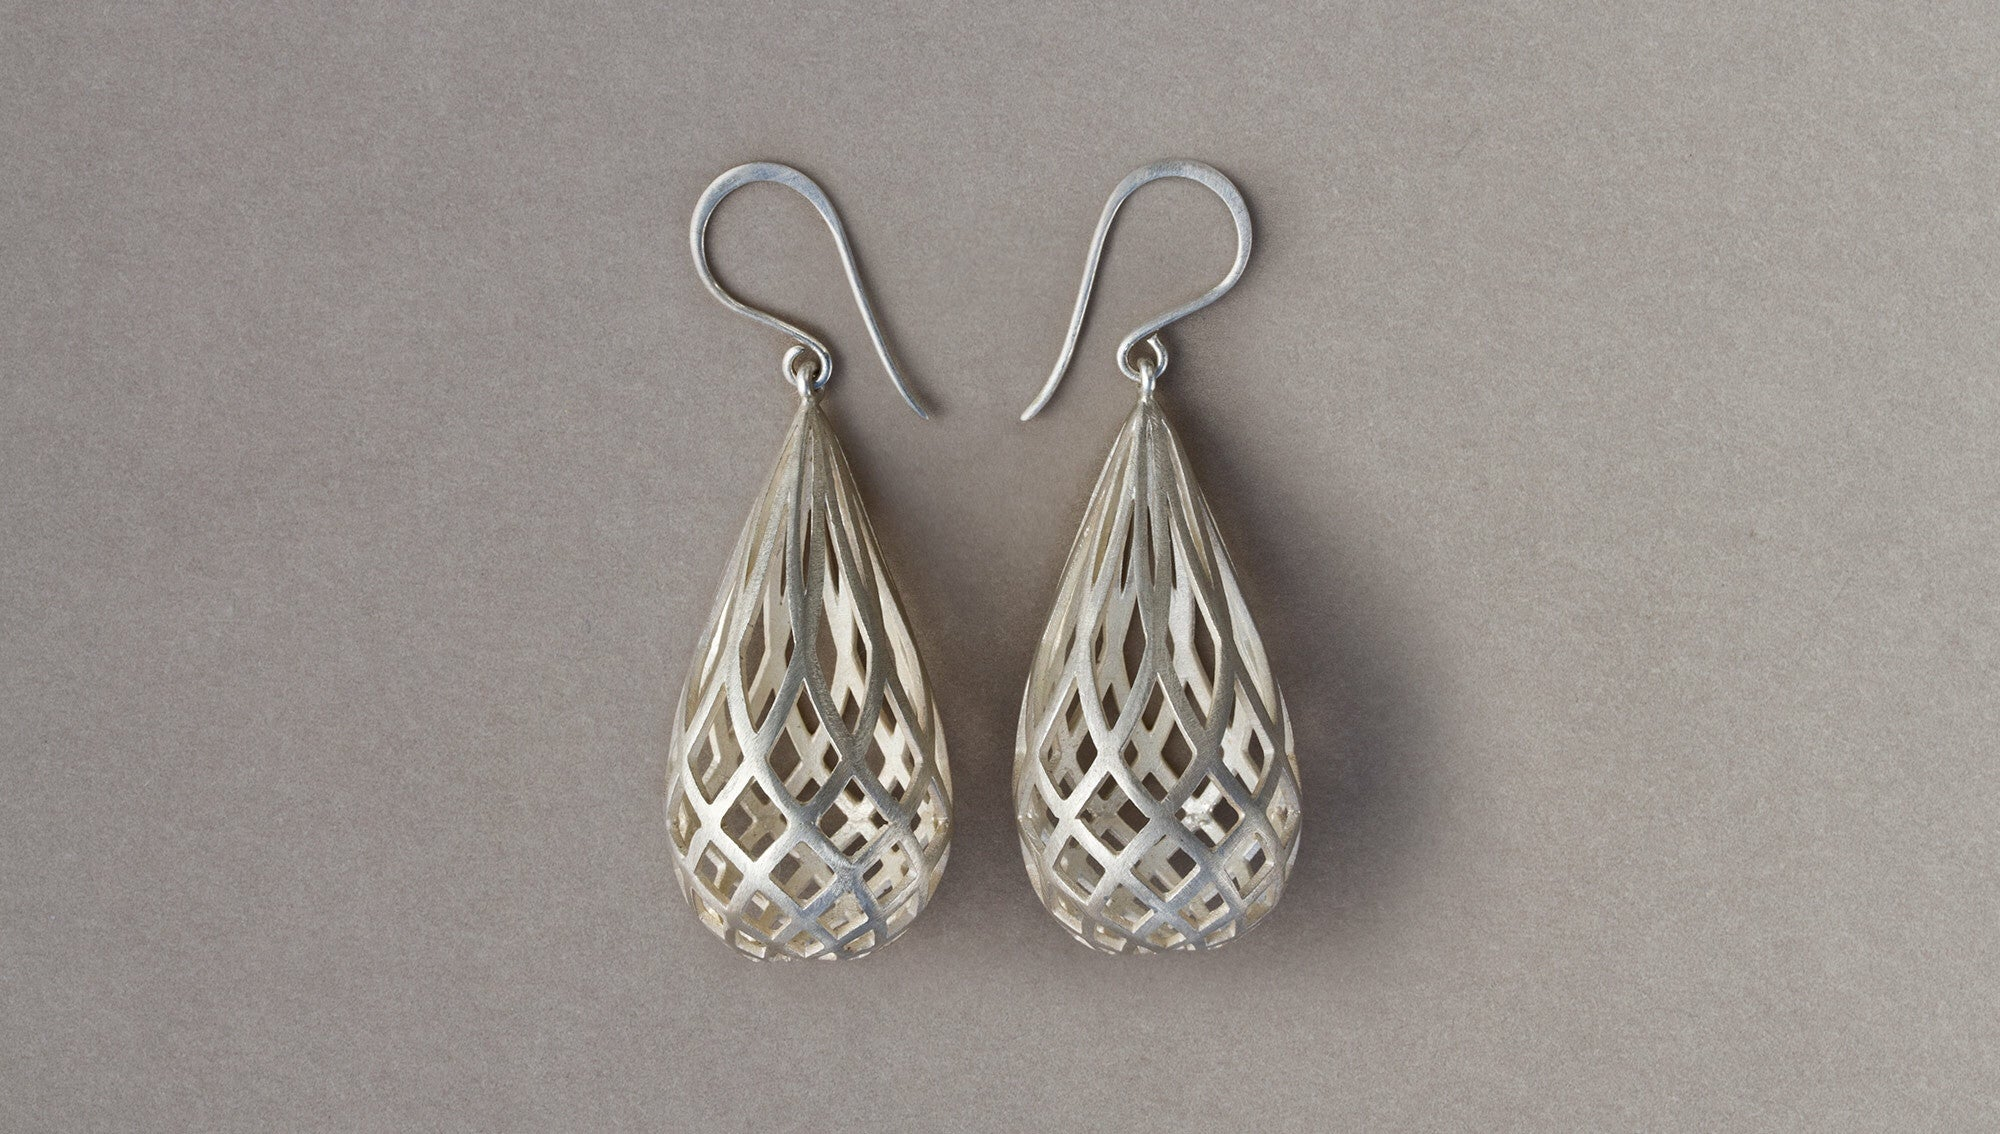 Koura Earrings by David Trubridge - Rata Jewellery